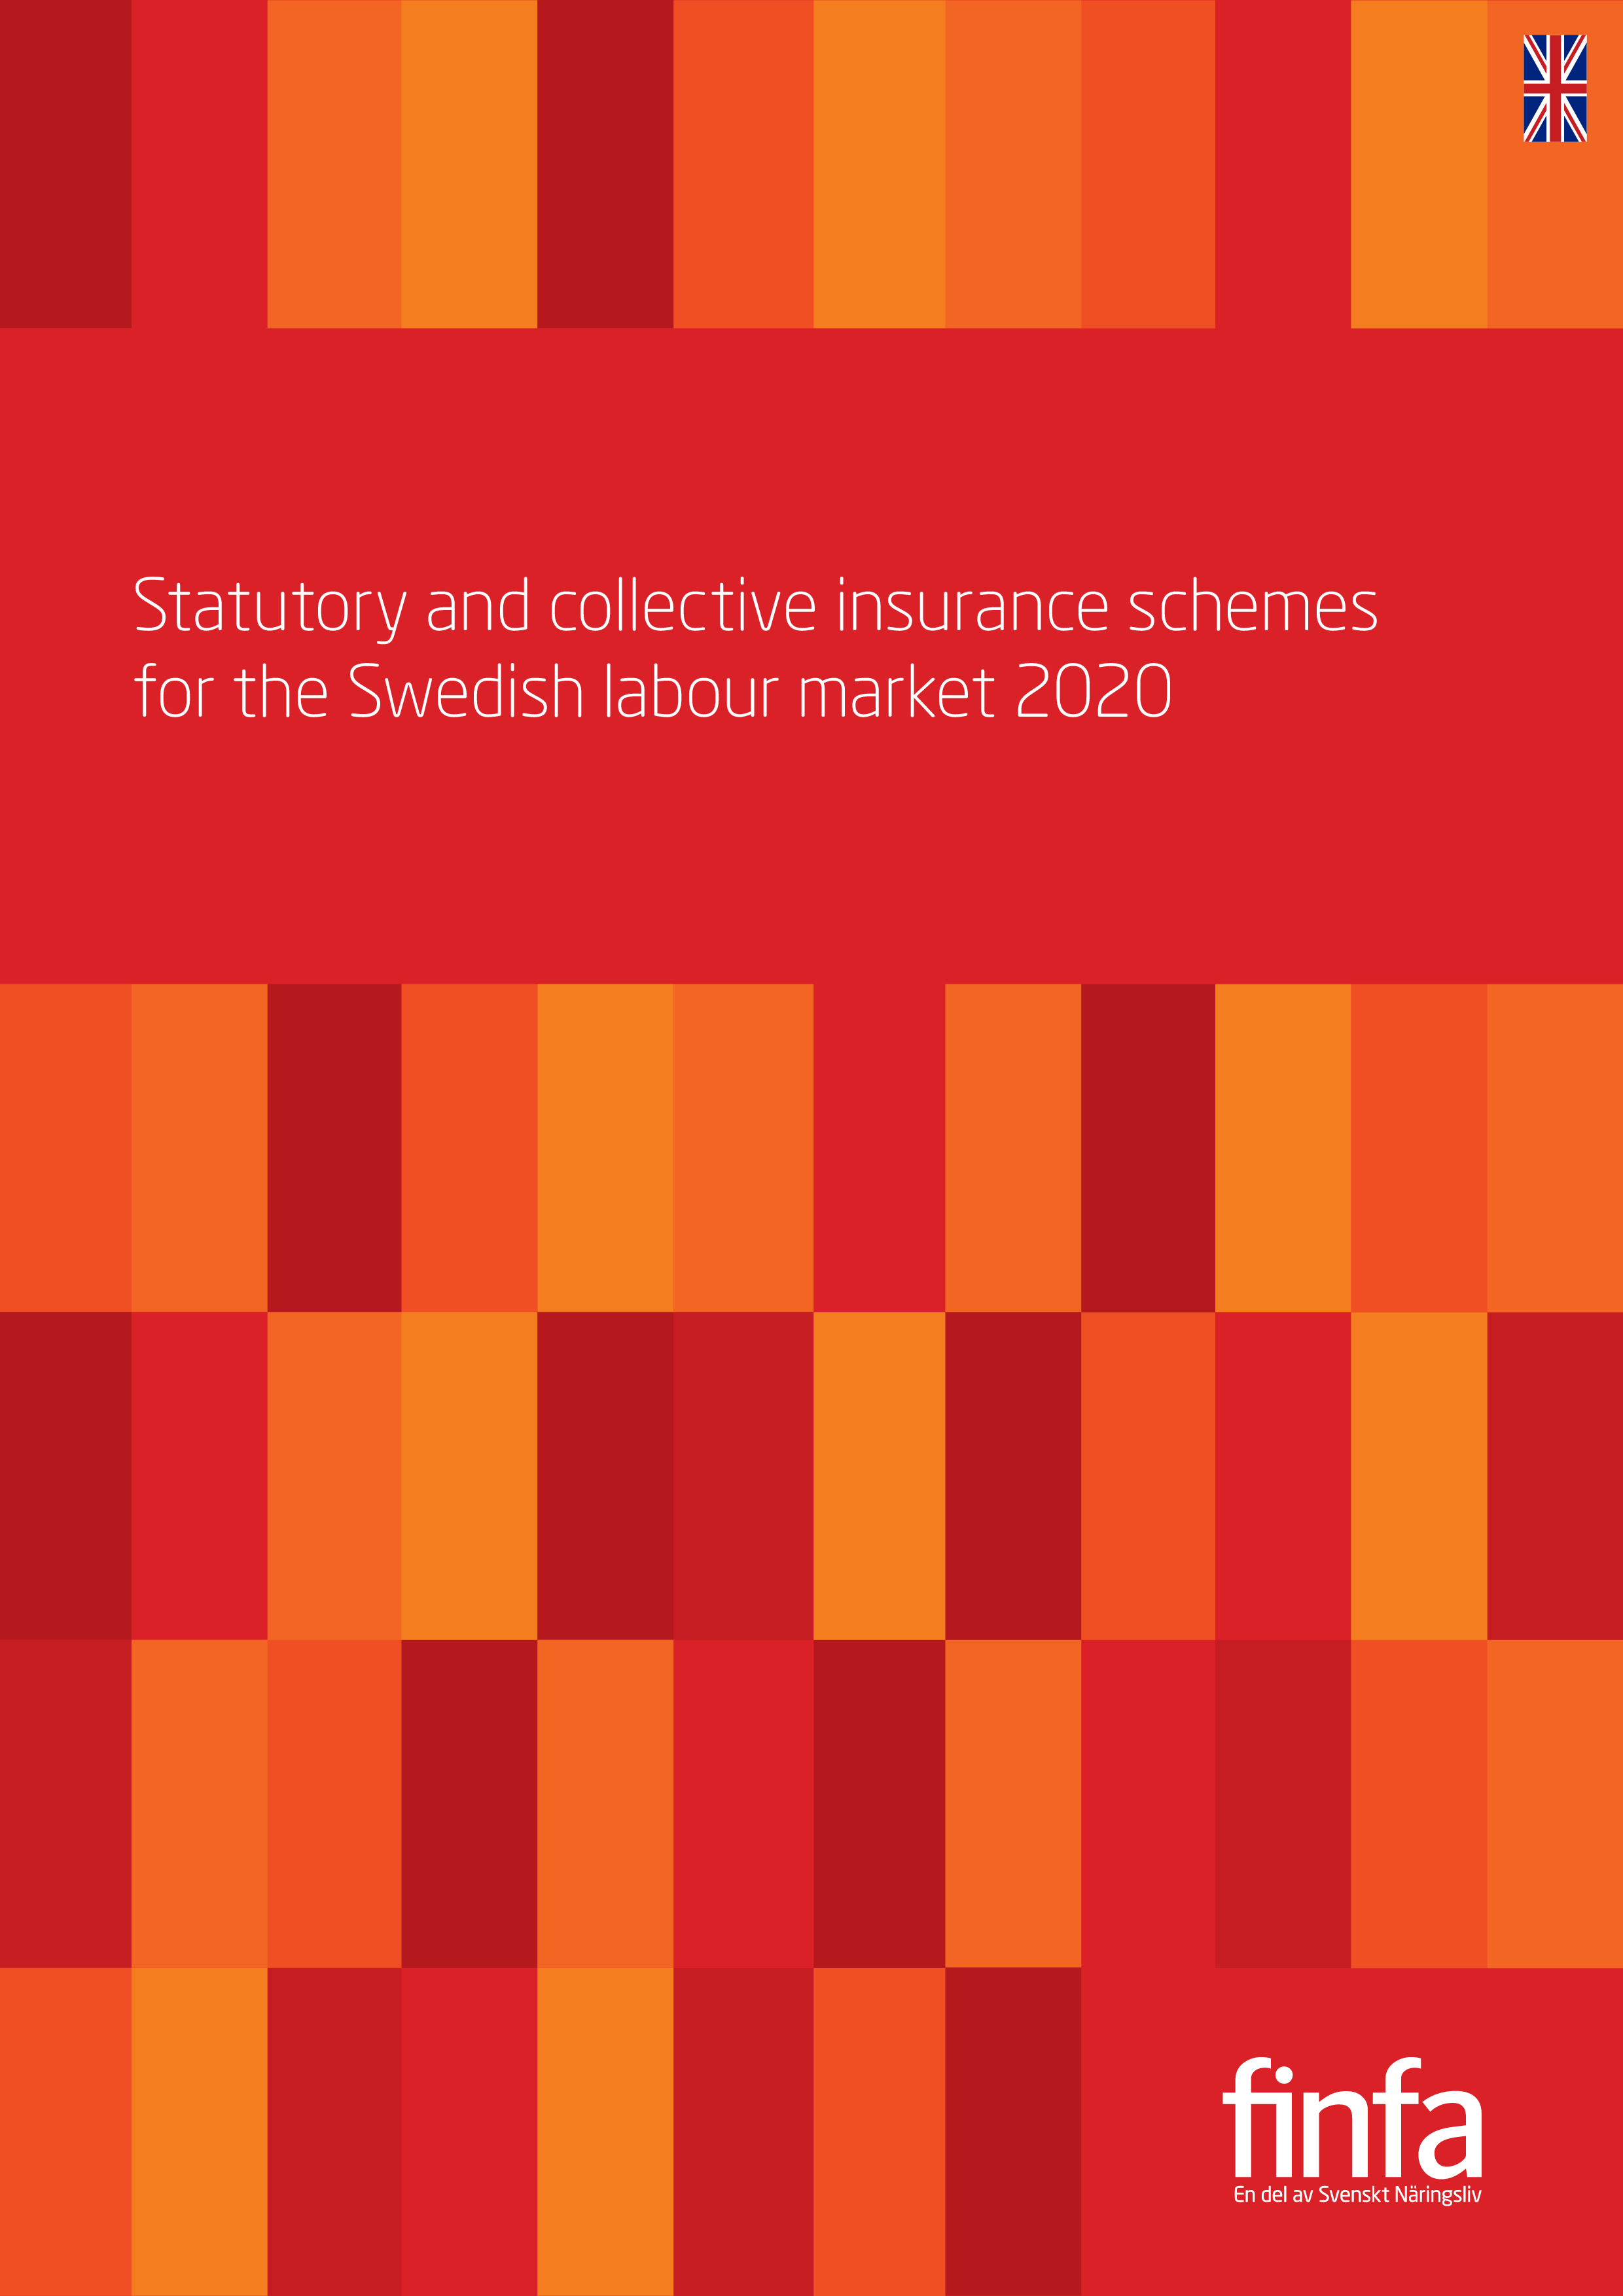 Statutory_and_collective_insurance_schemes_2020-03.pdf